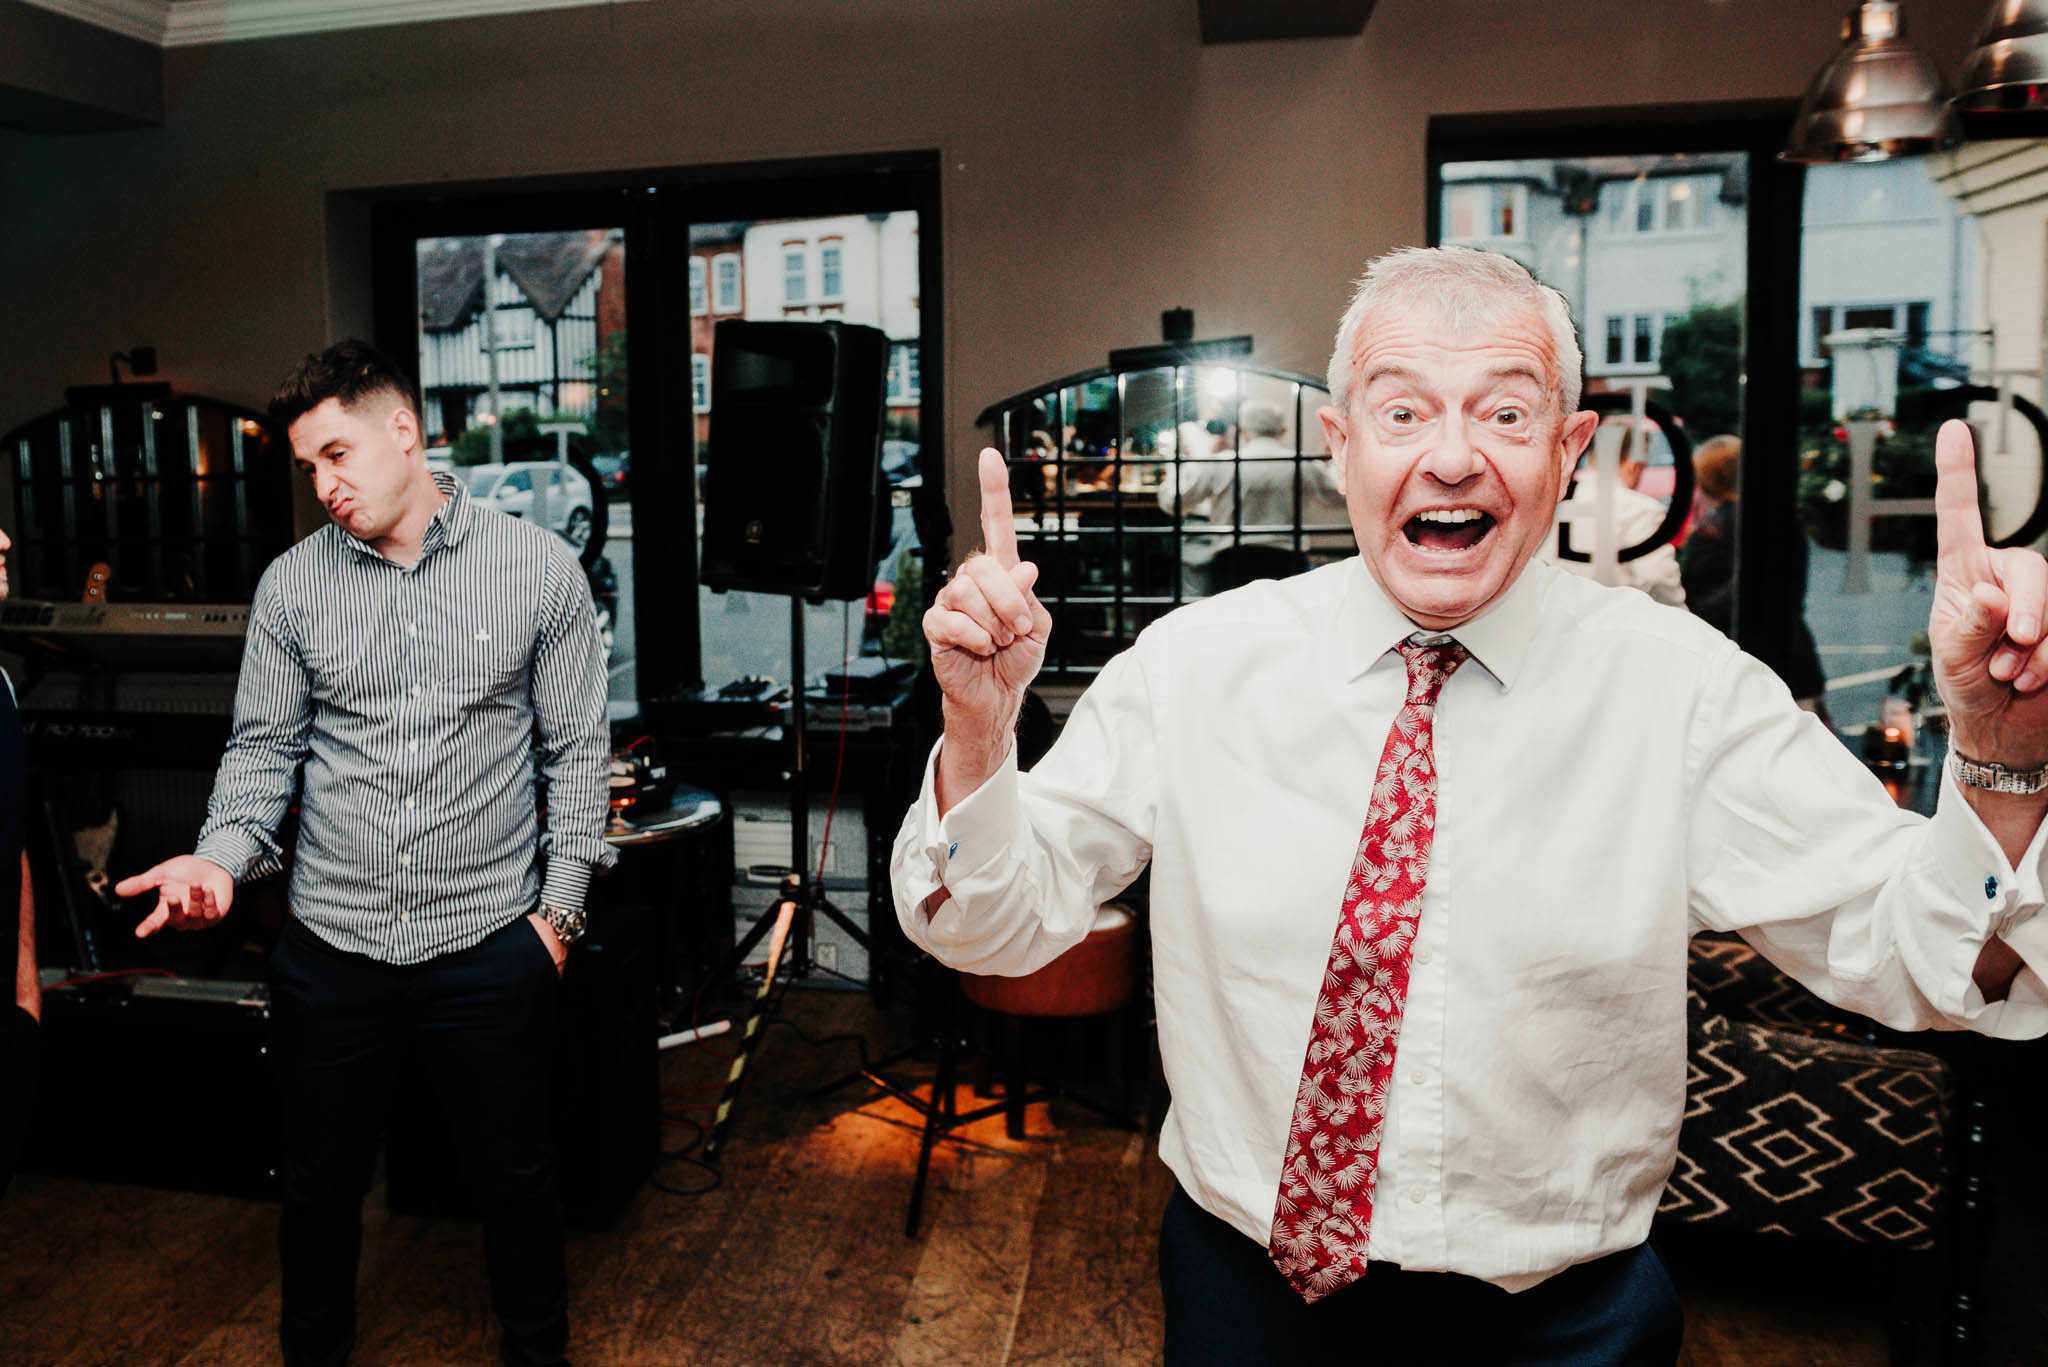 dancing-wedding-blog-scott-stockwell-photography-end-2017.jpg